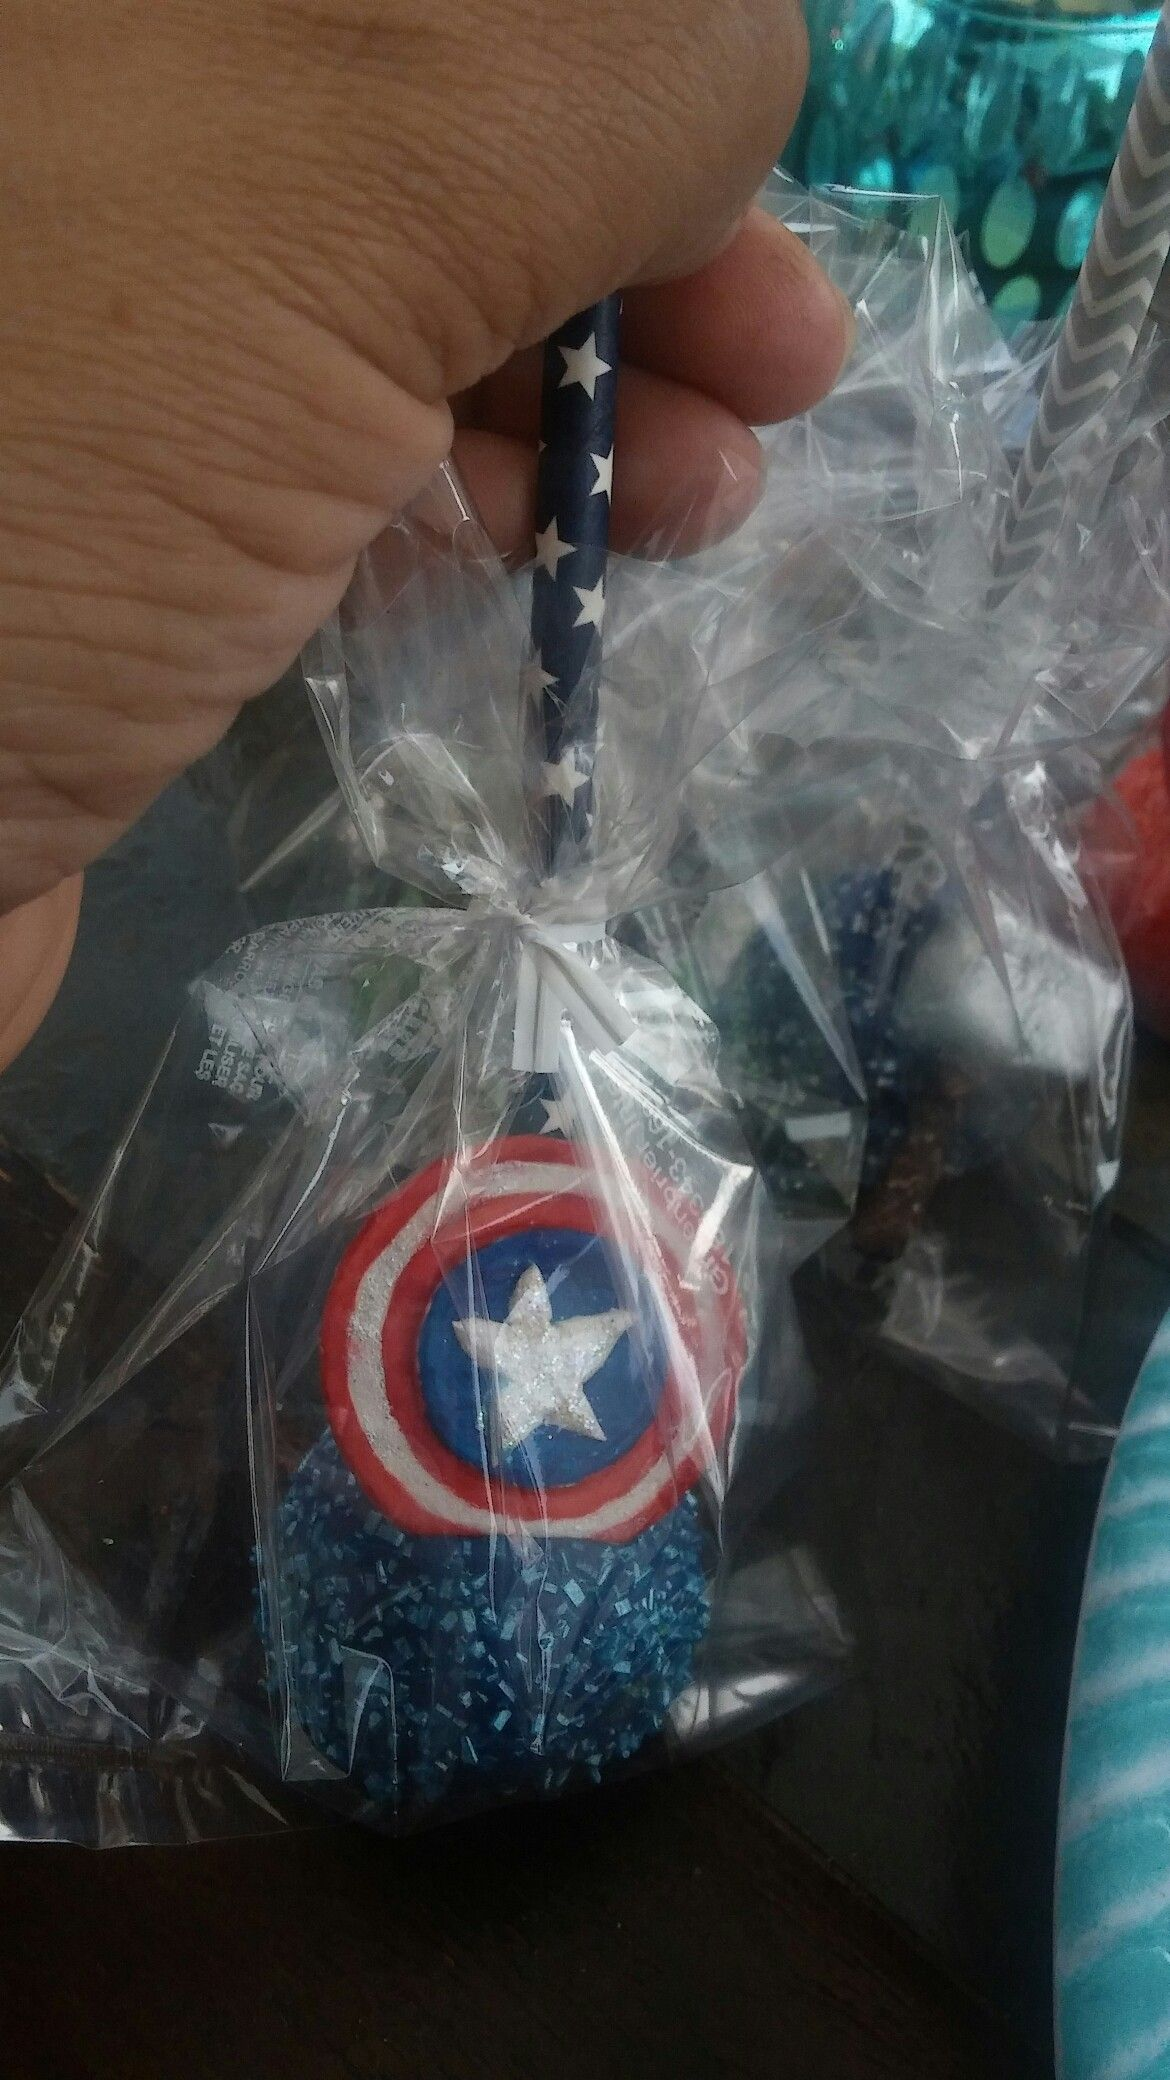 Captain america cake pop created by majestic delicasys